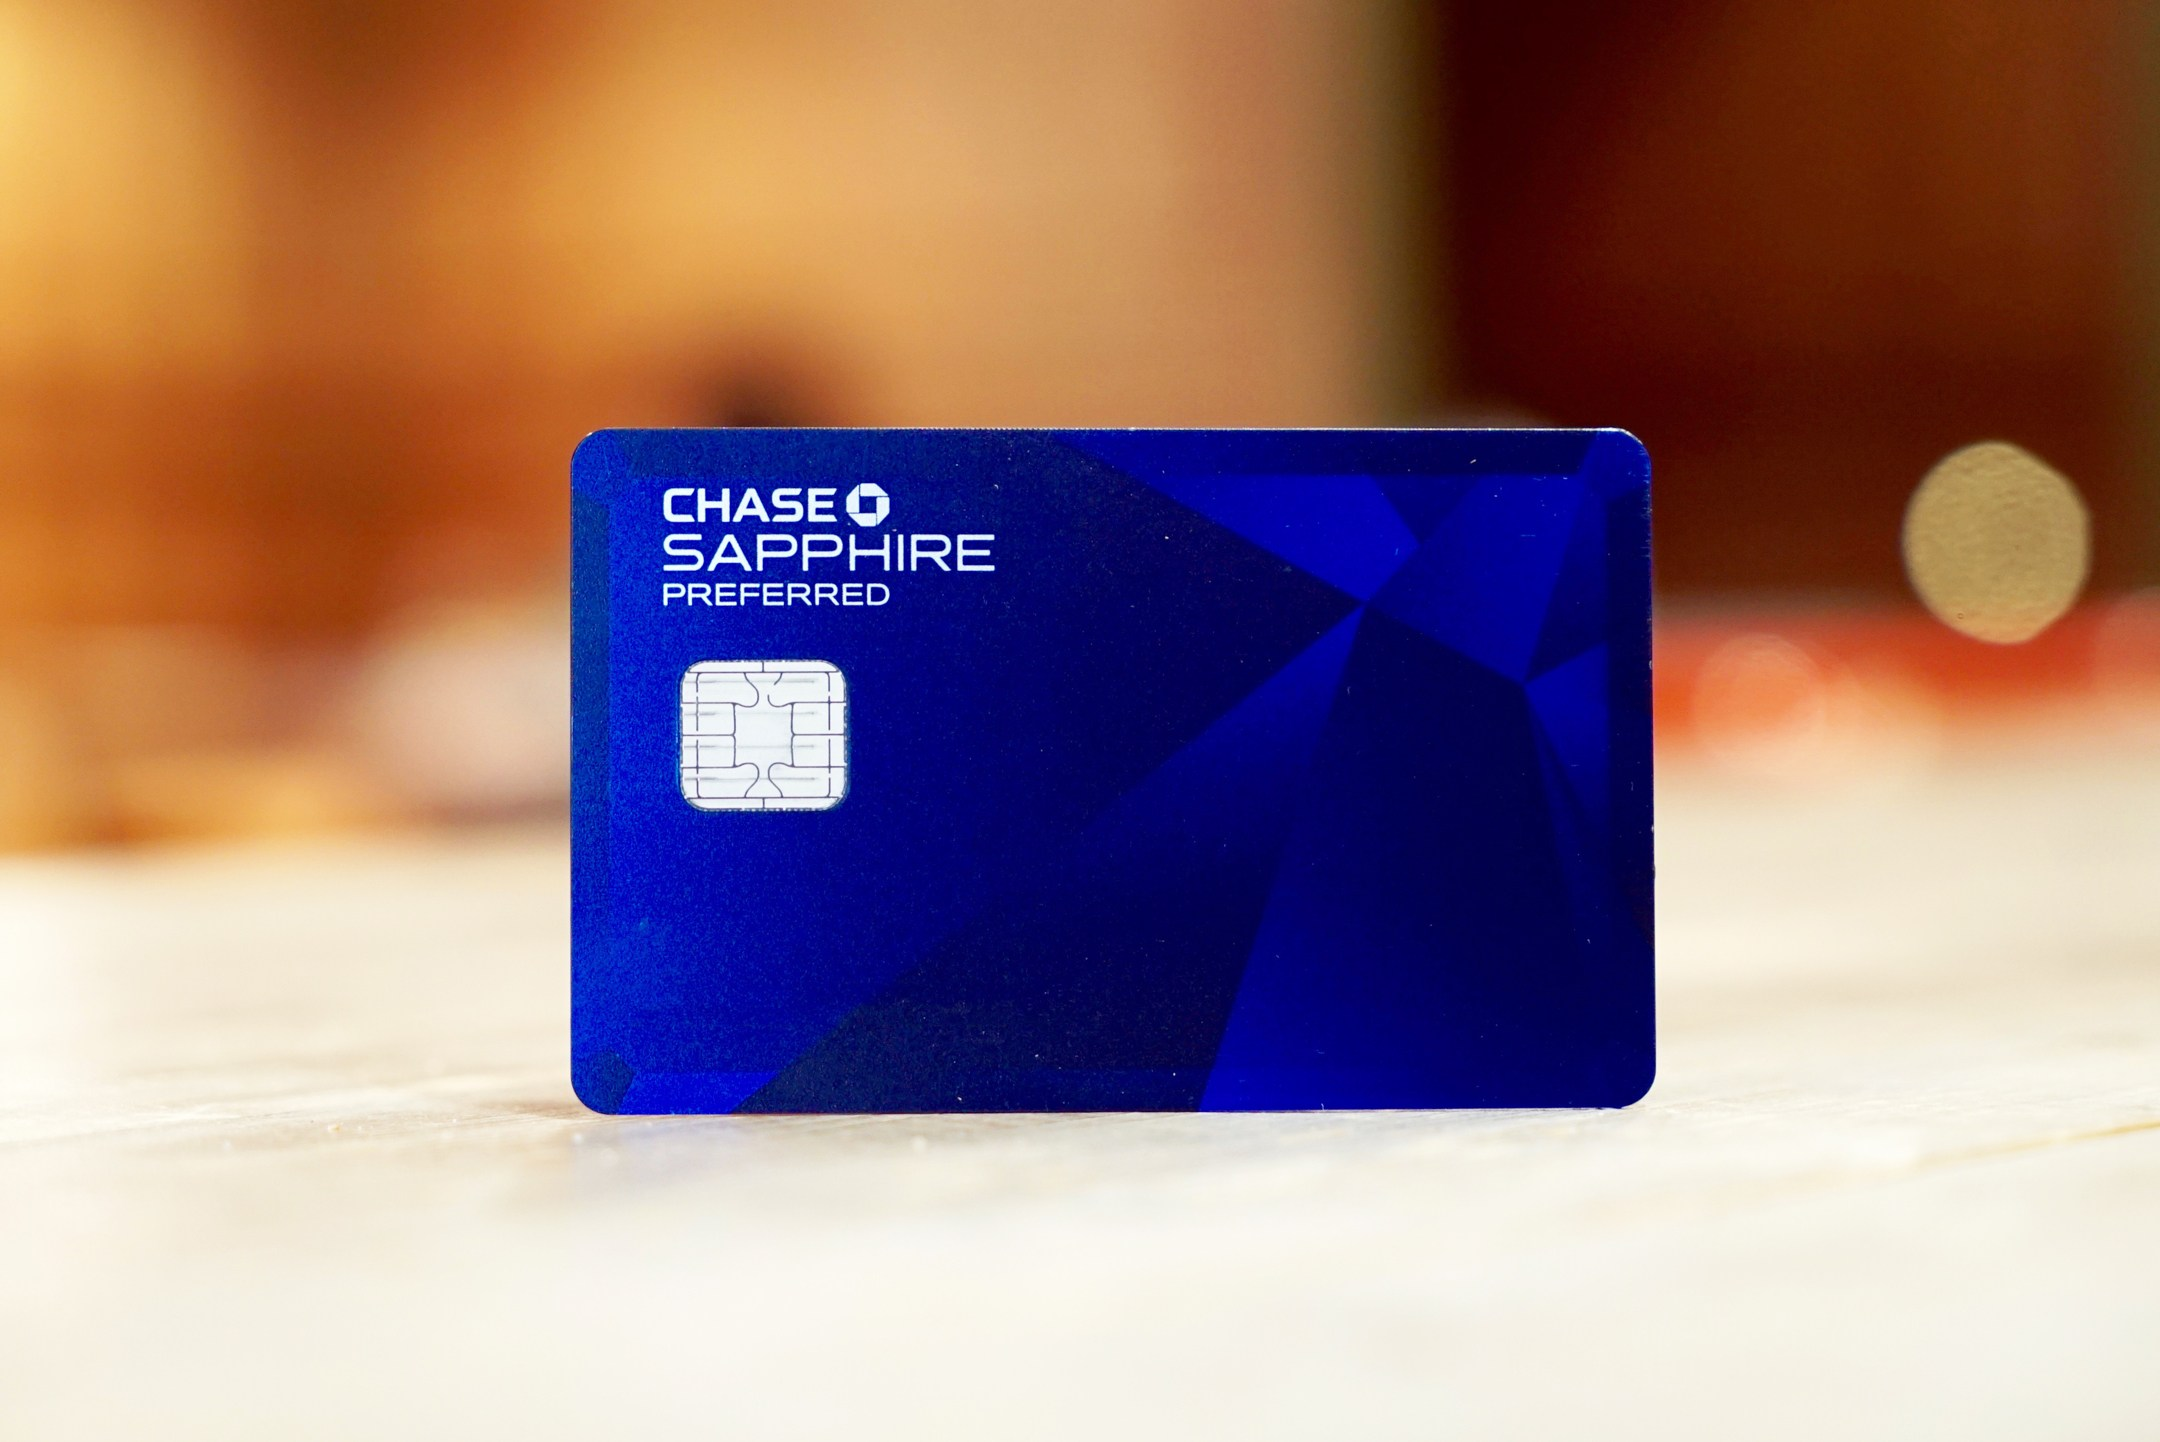 The Chase Sapphire Preferred is the card we recommend people start with.